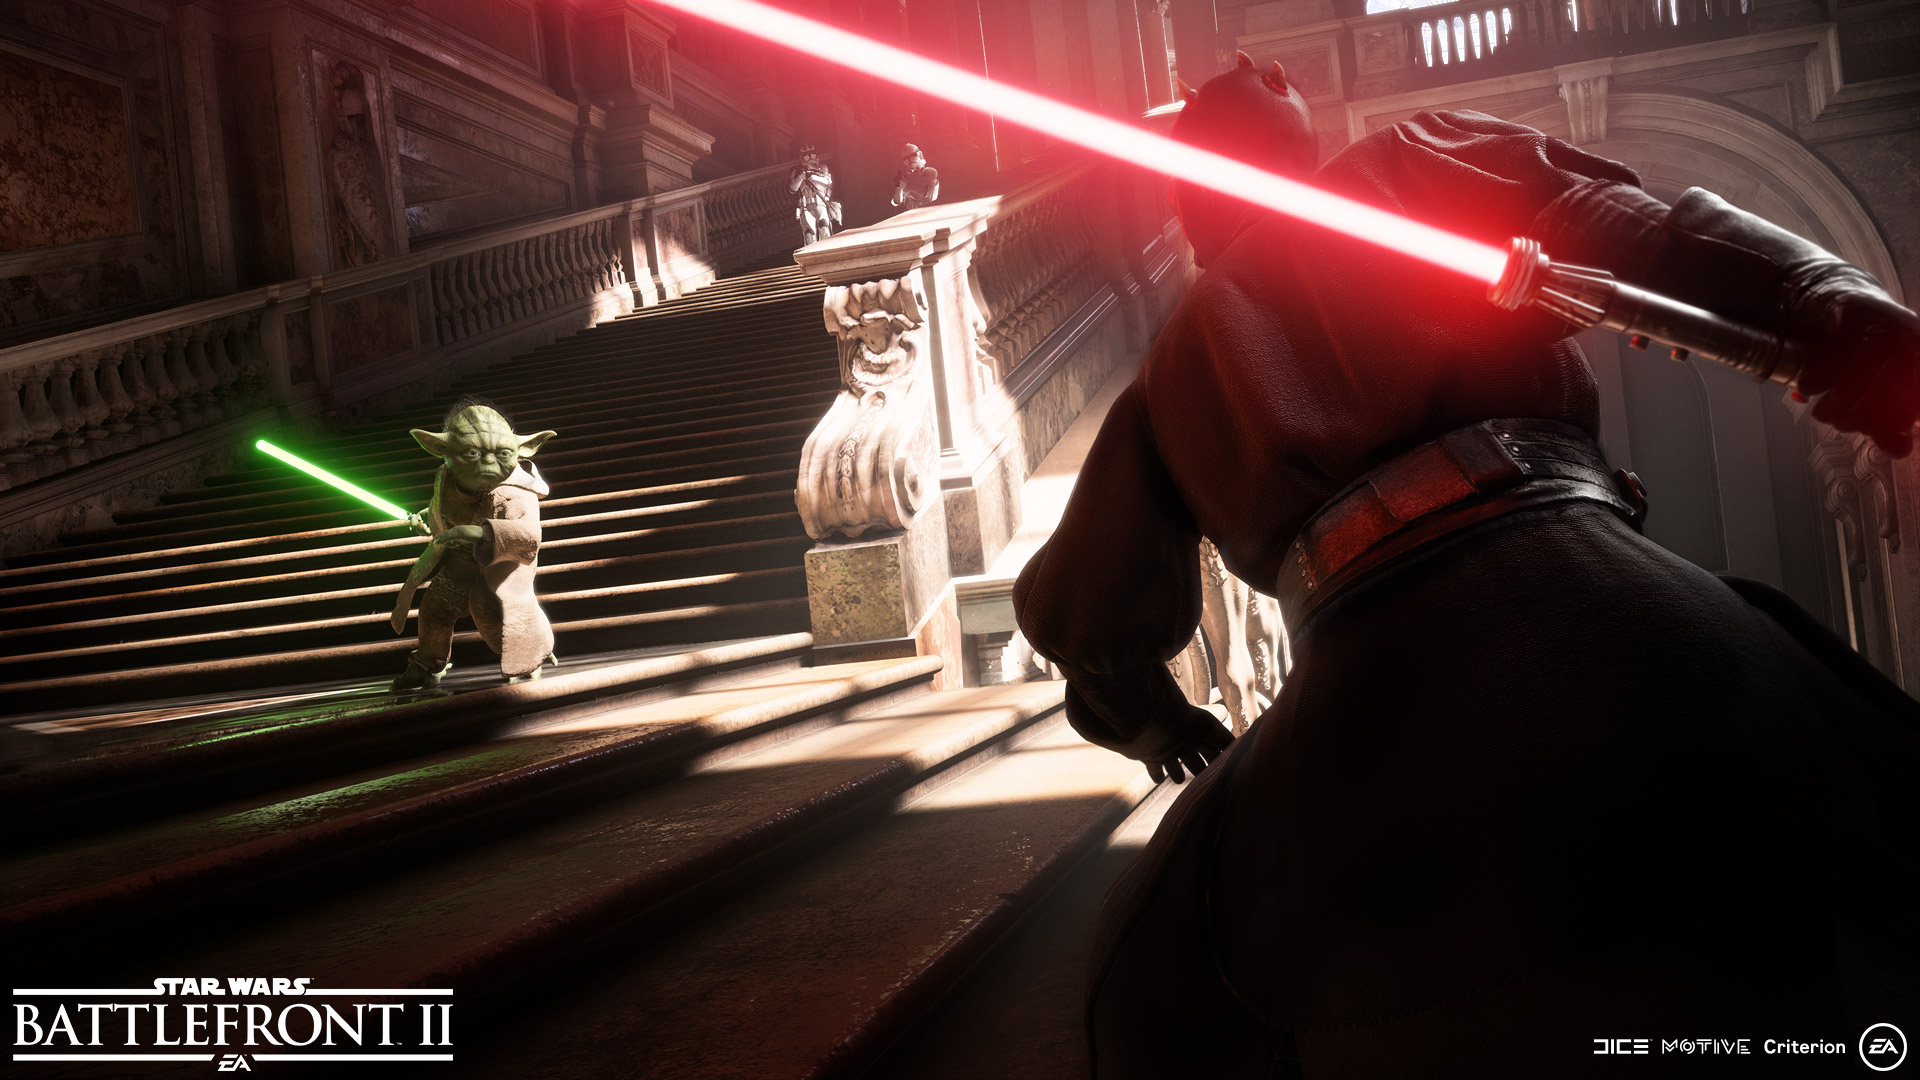 UPDATE! Star Wars Battlefront II: New Teaser, Leaked